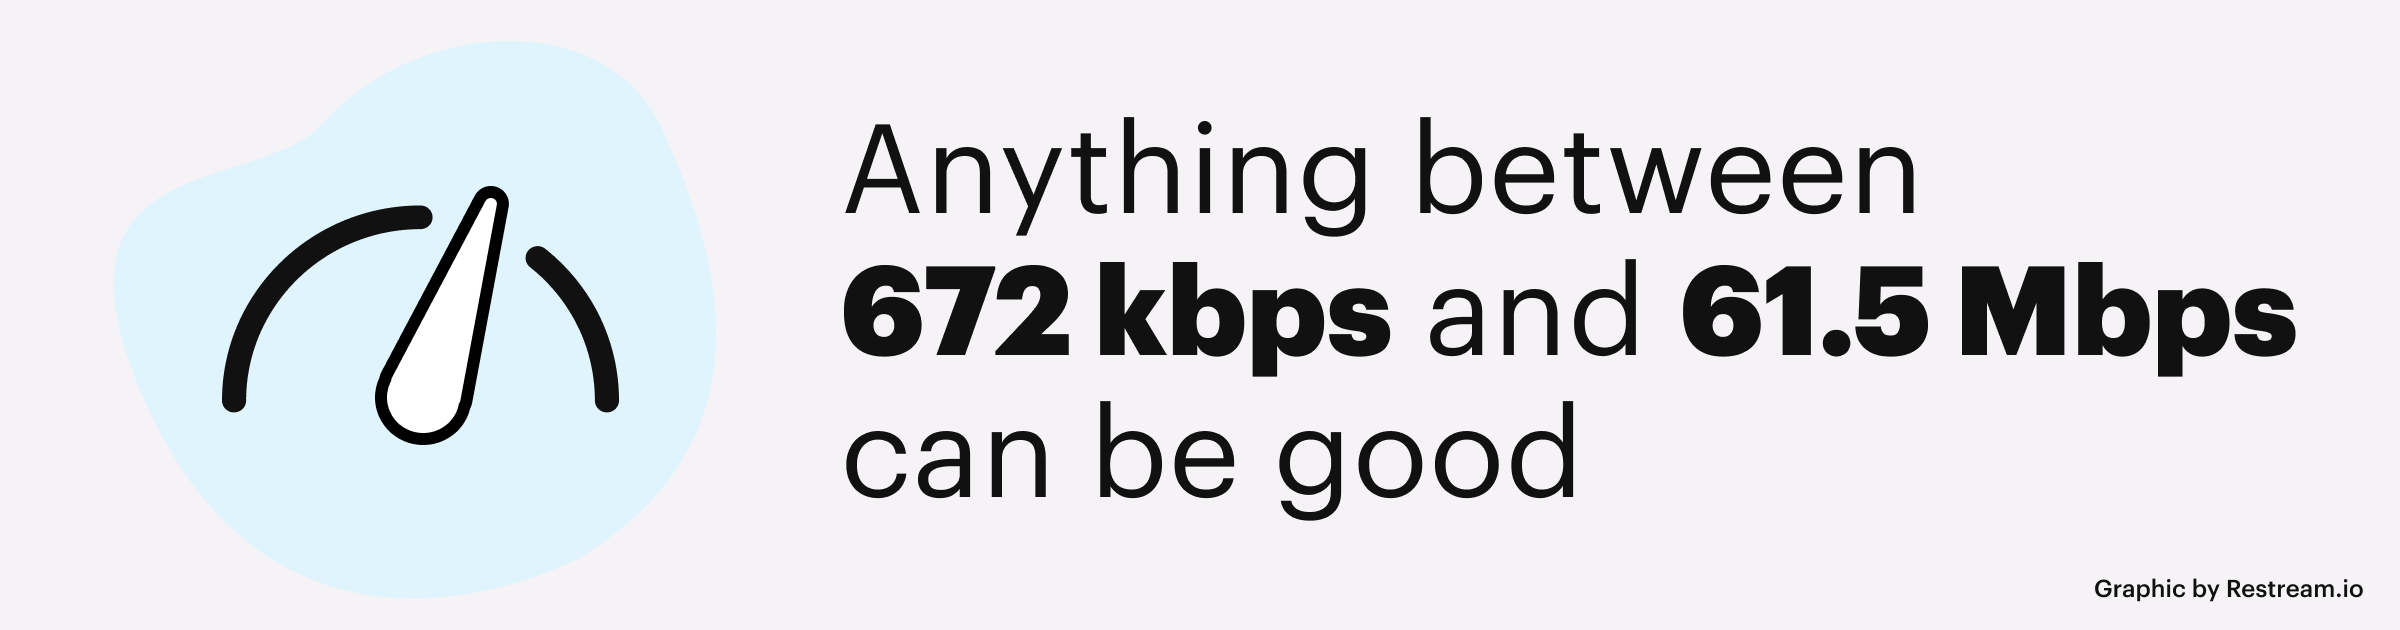 A good upload speed for streaming is between 672 kbps and 61.5 Mbps